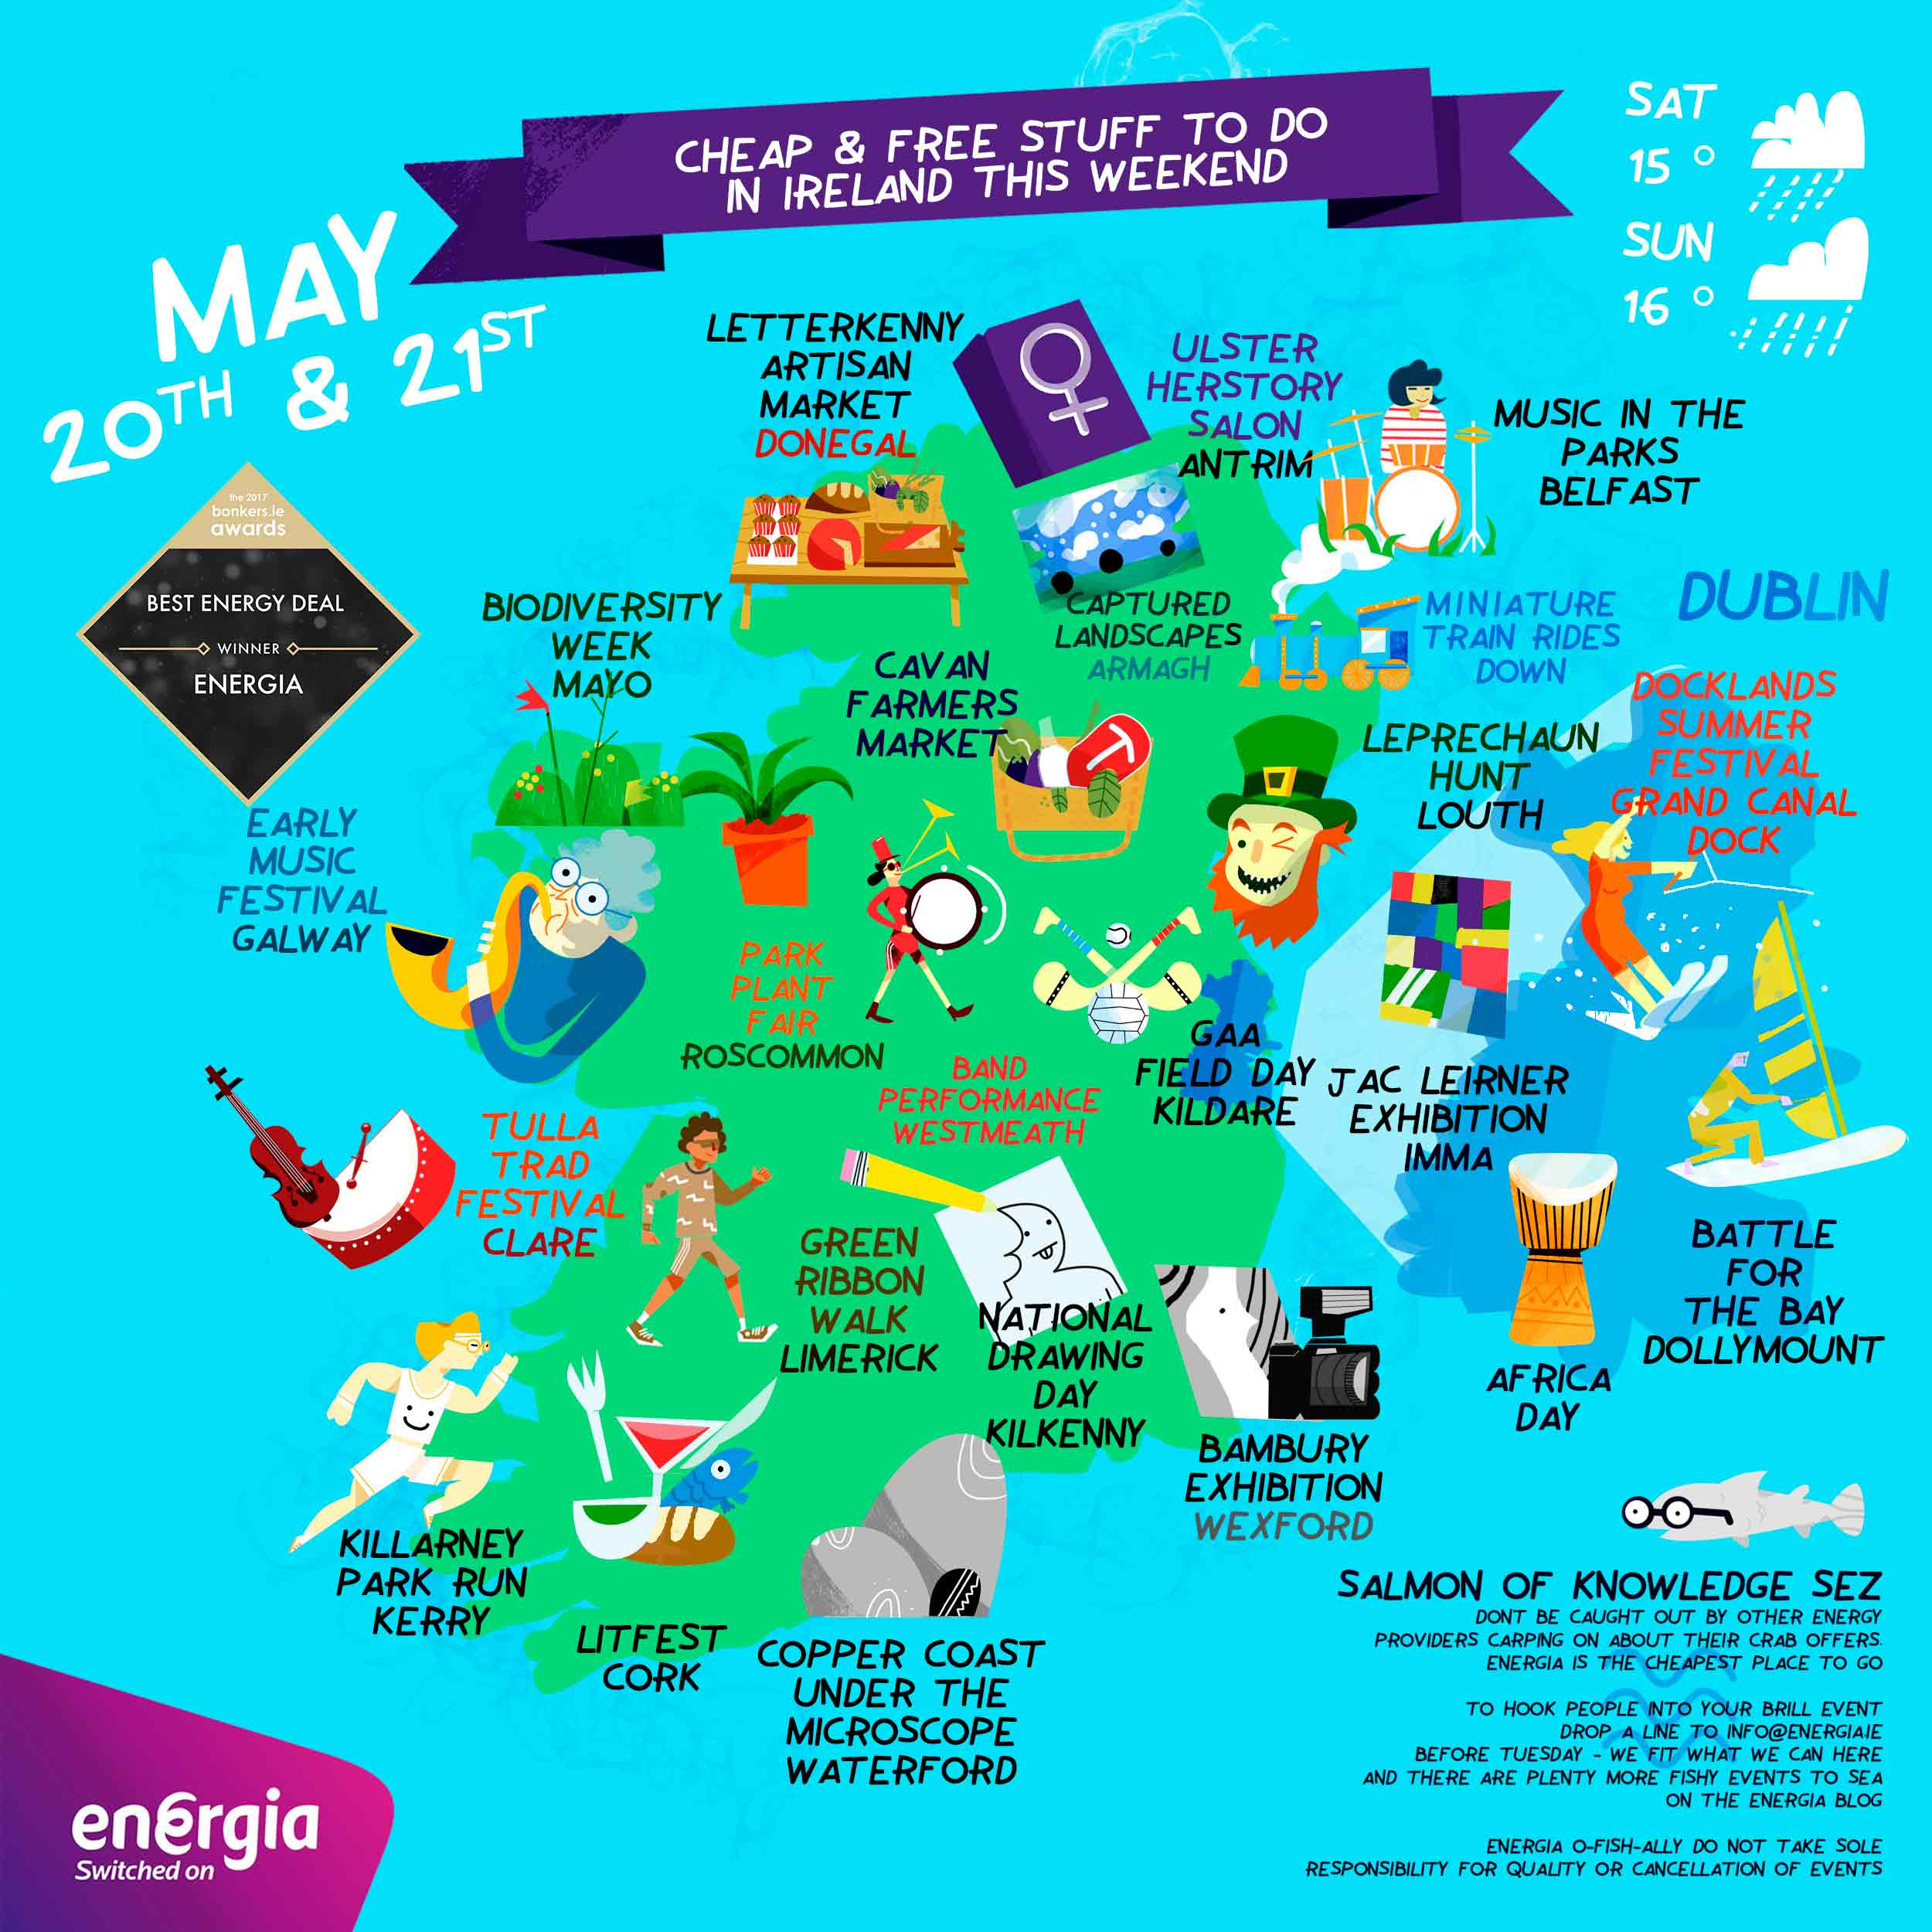 Clever Map of cheap and free stuff to do this weekend 20th-21st May